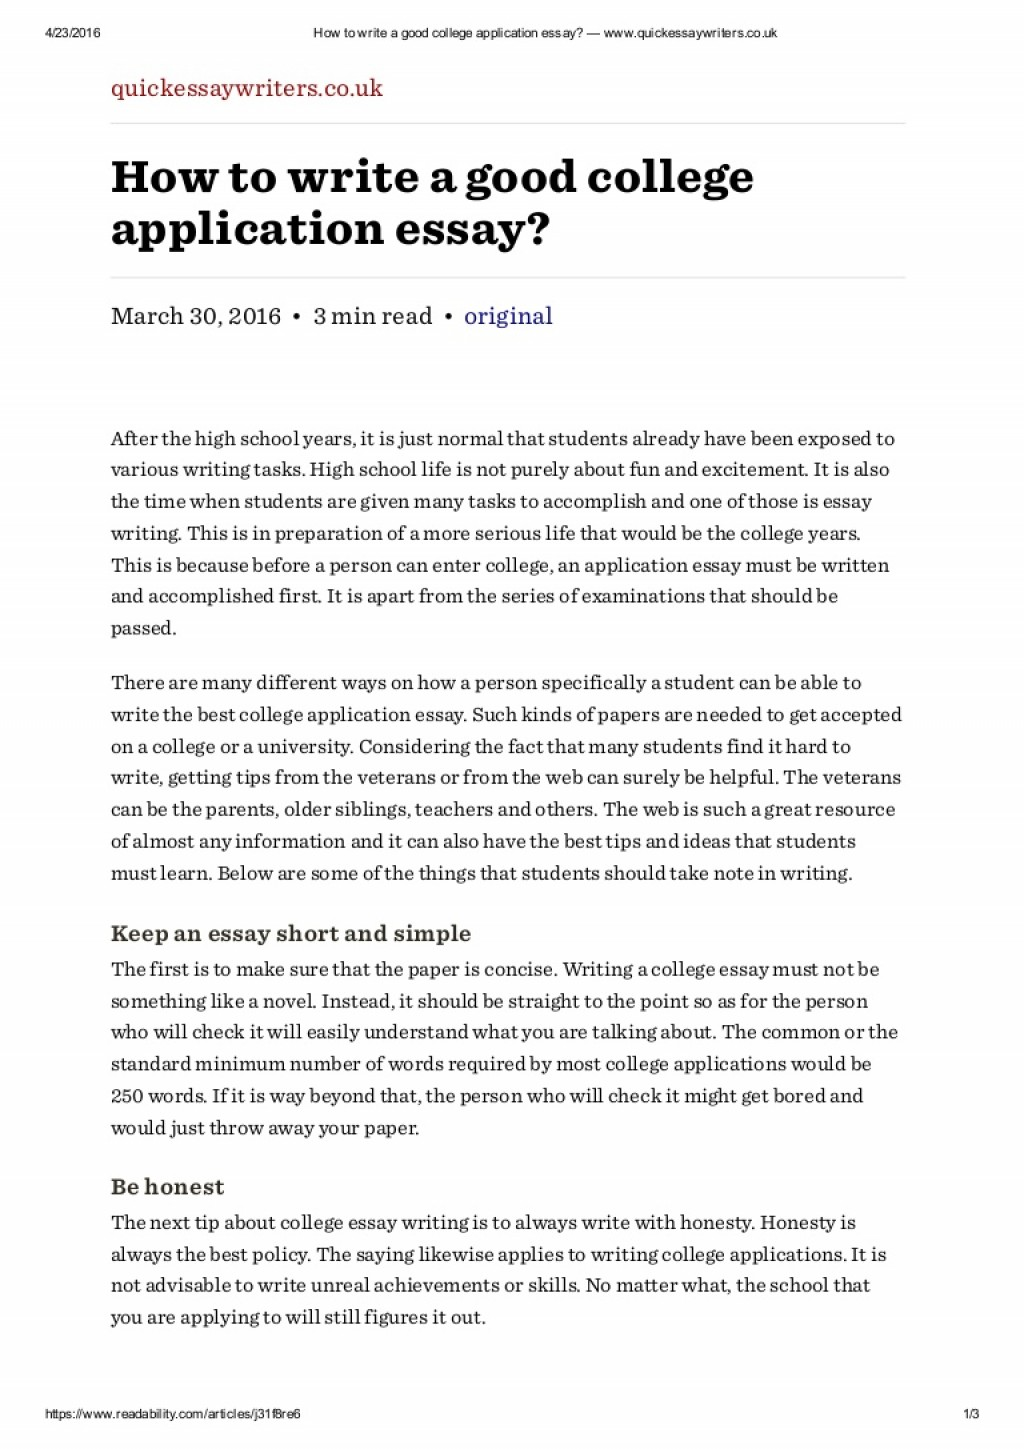 009 Howtowriteagoodcollegeapplicationessaywww Thumbnail Essay Example Writing College Rare A Application Of Write Large